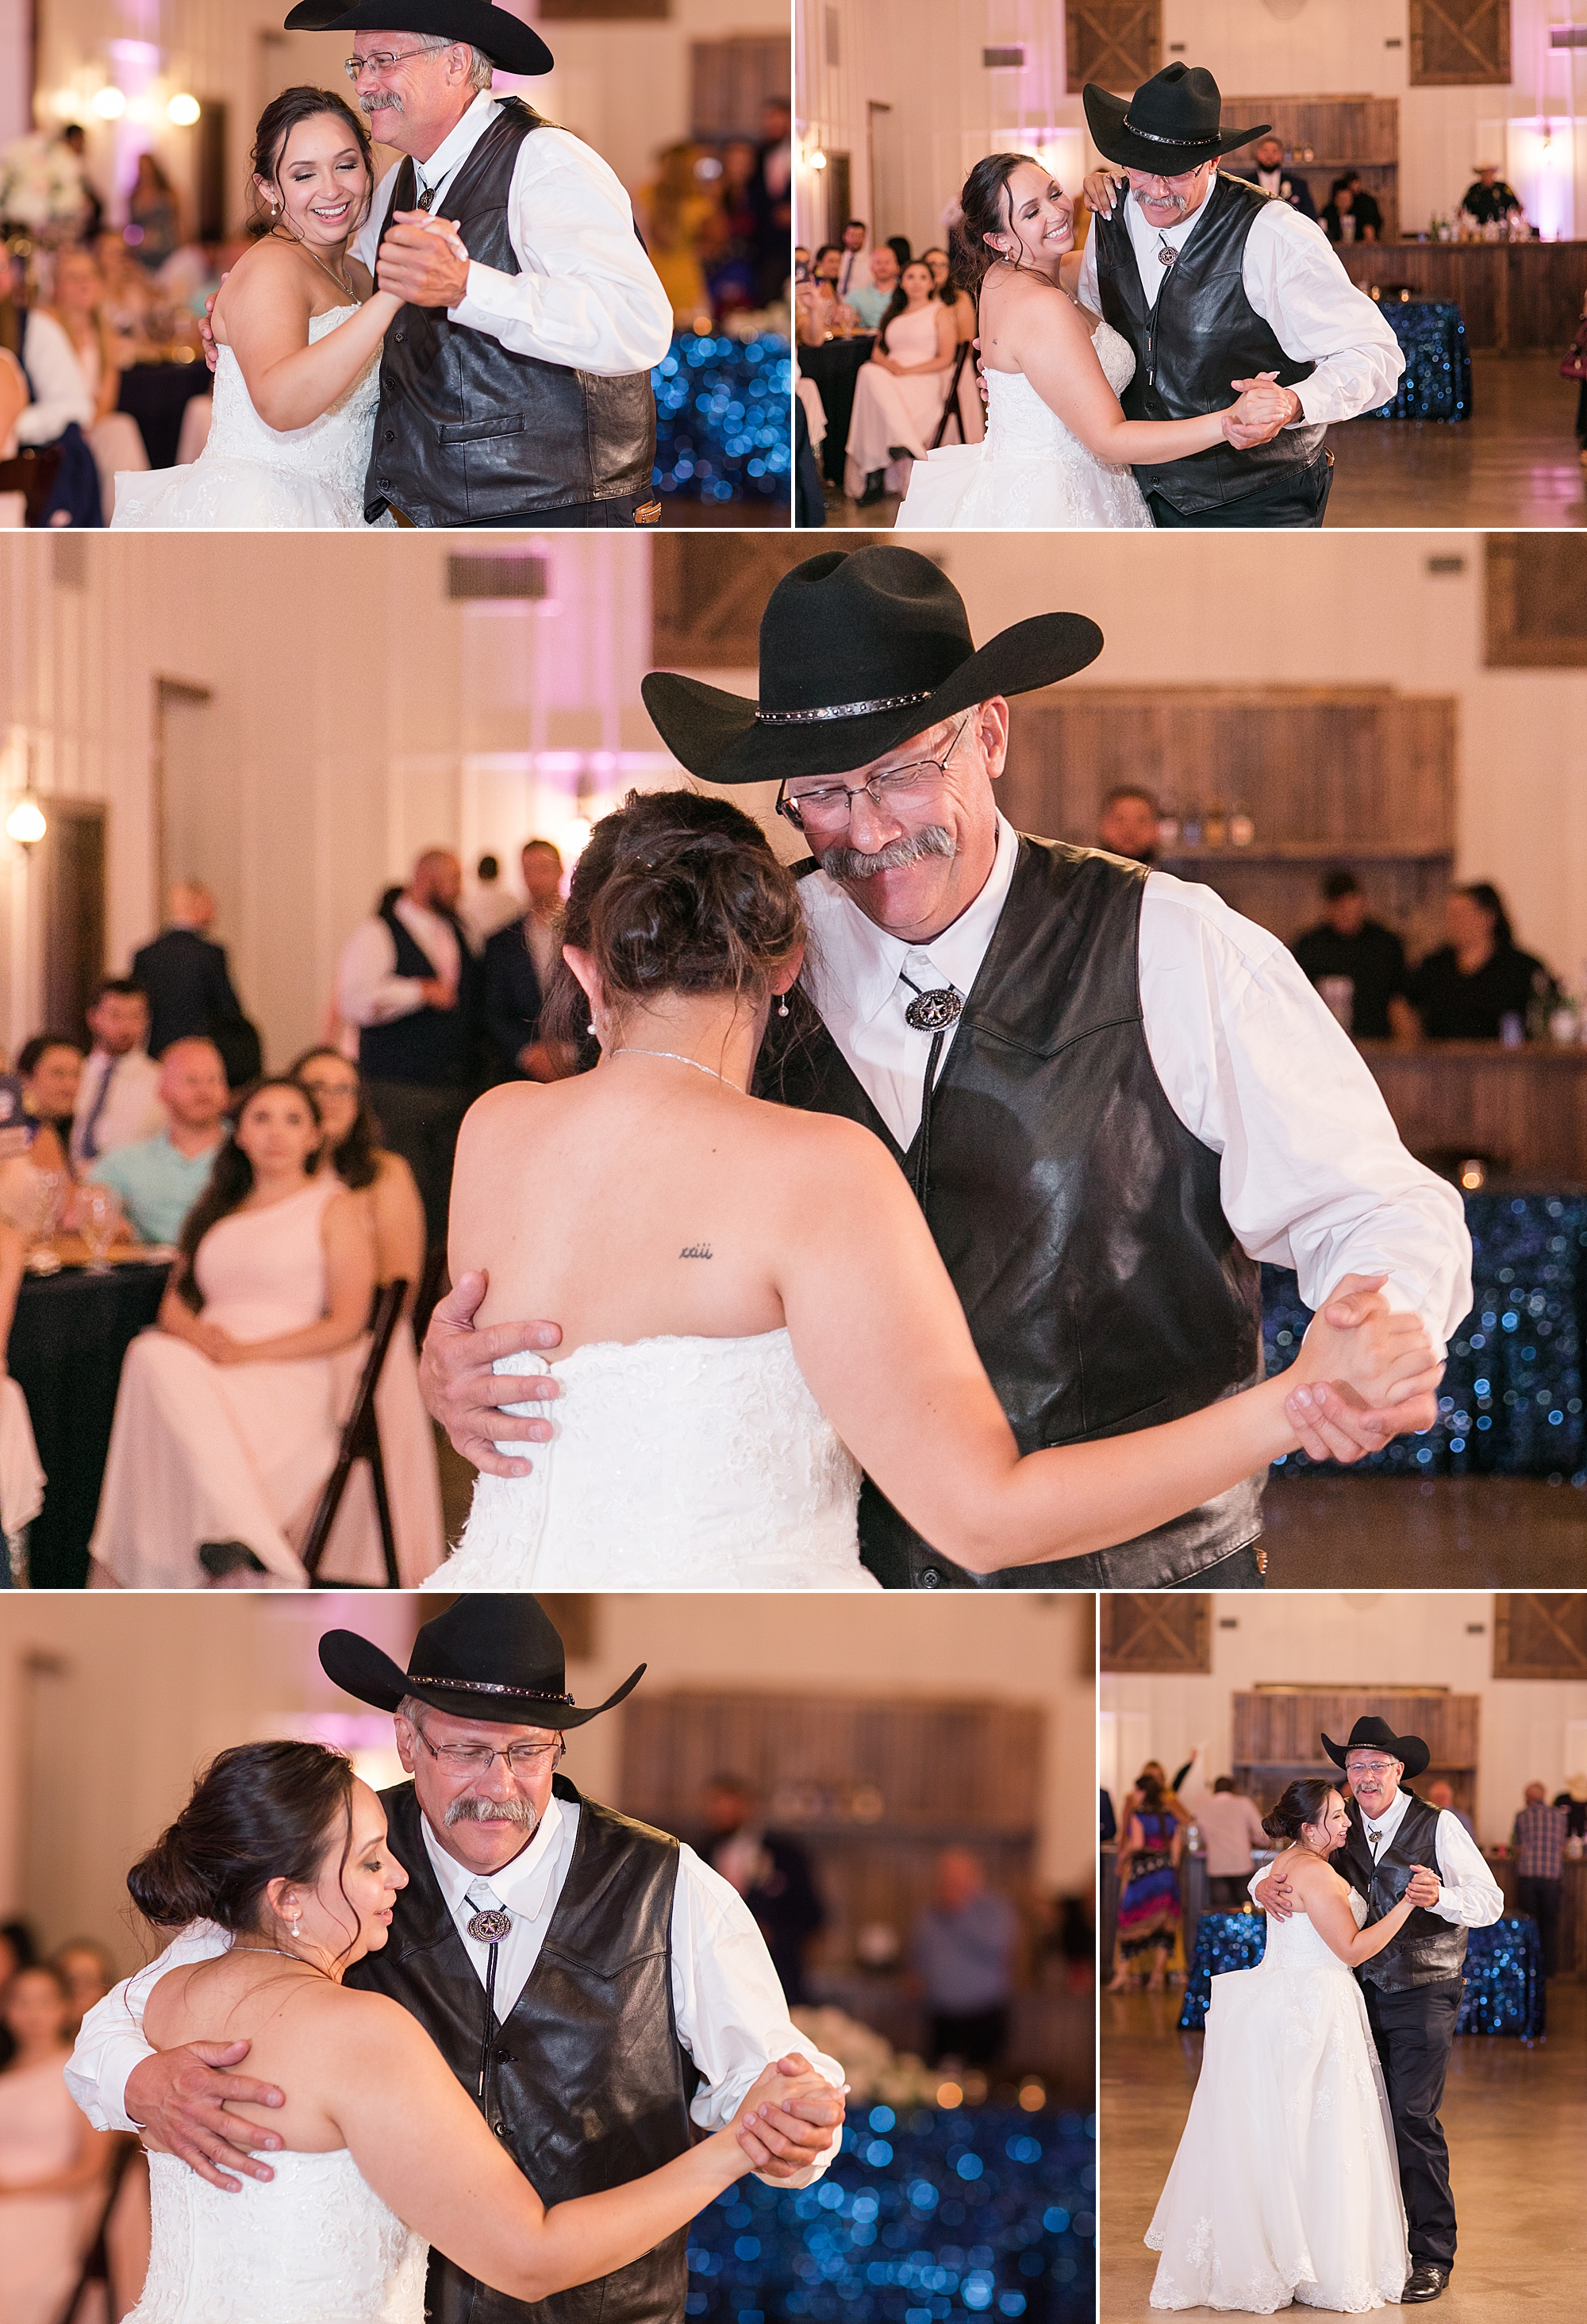 Wedding-Photographer-Bulverde-Texas-Western-Sky-Event-Venue-Carly-Barton-Photography_0076.jpg